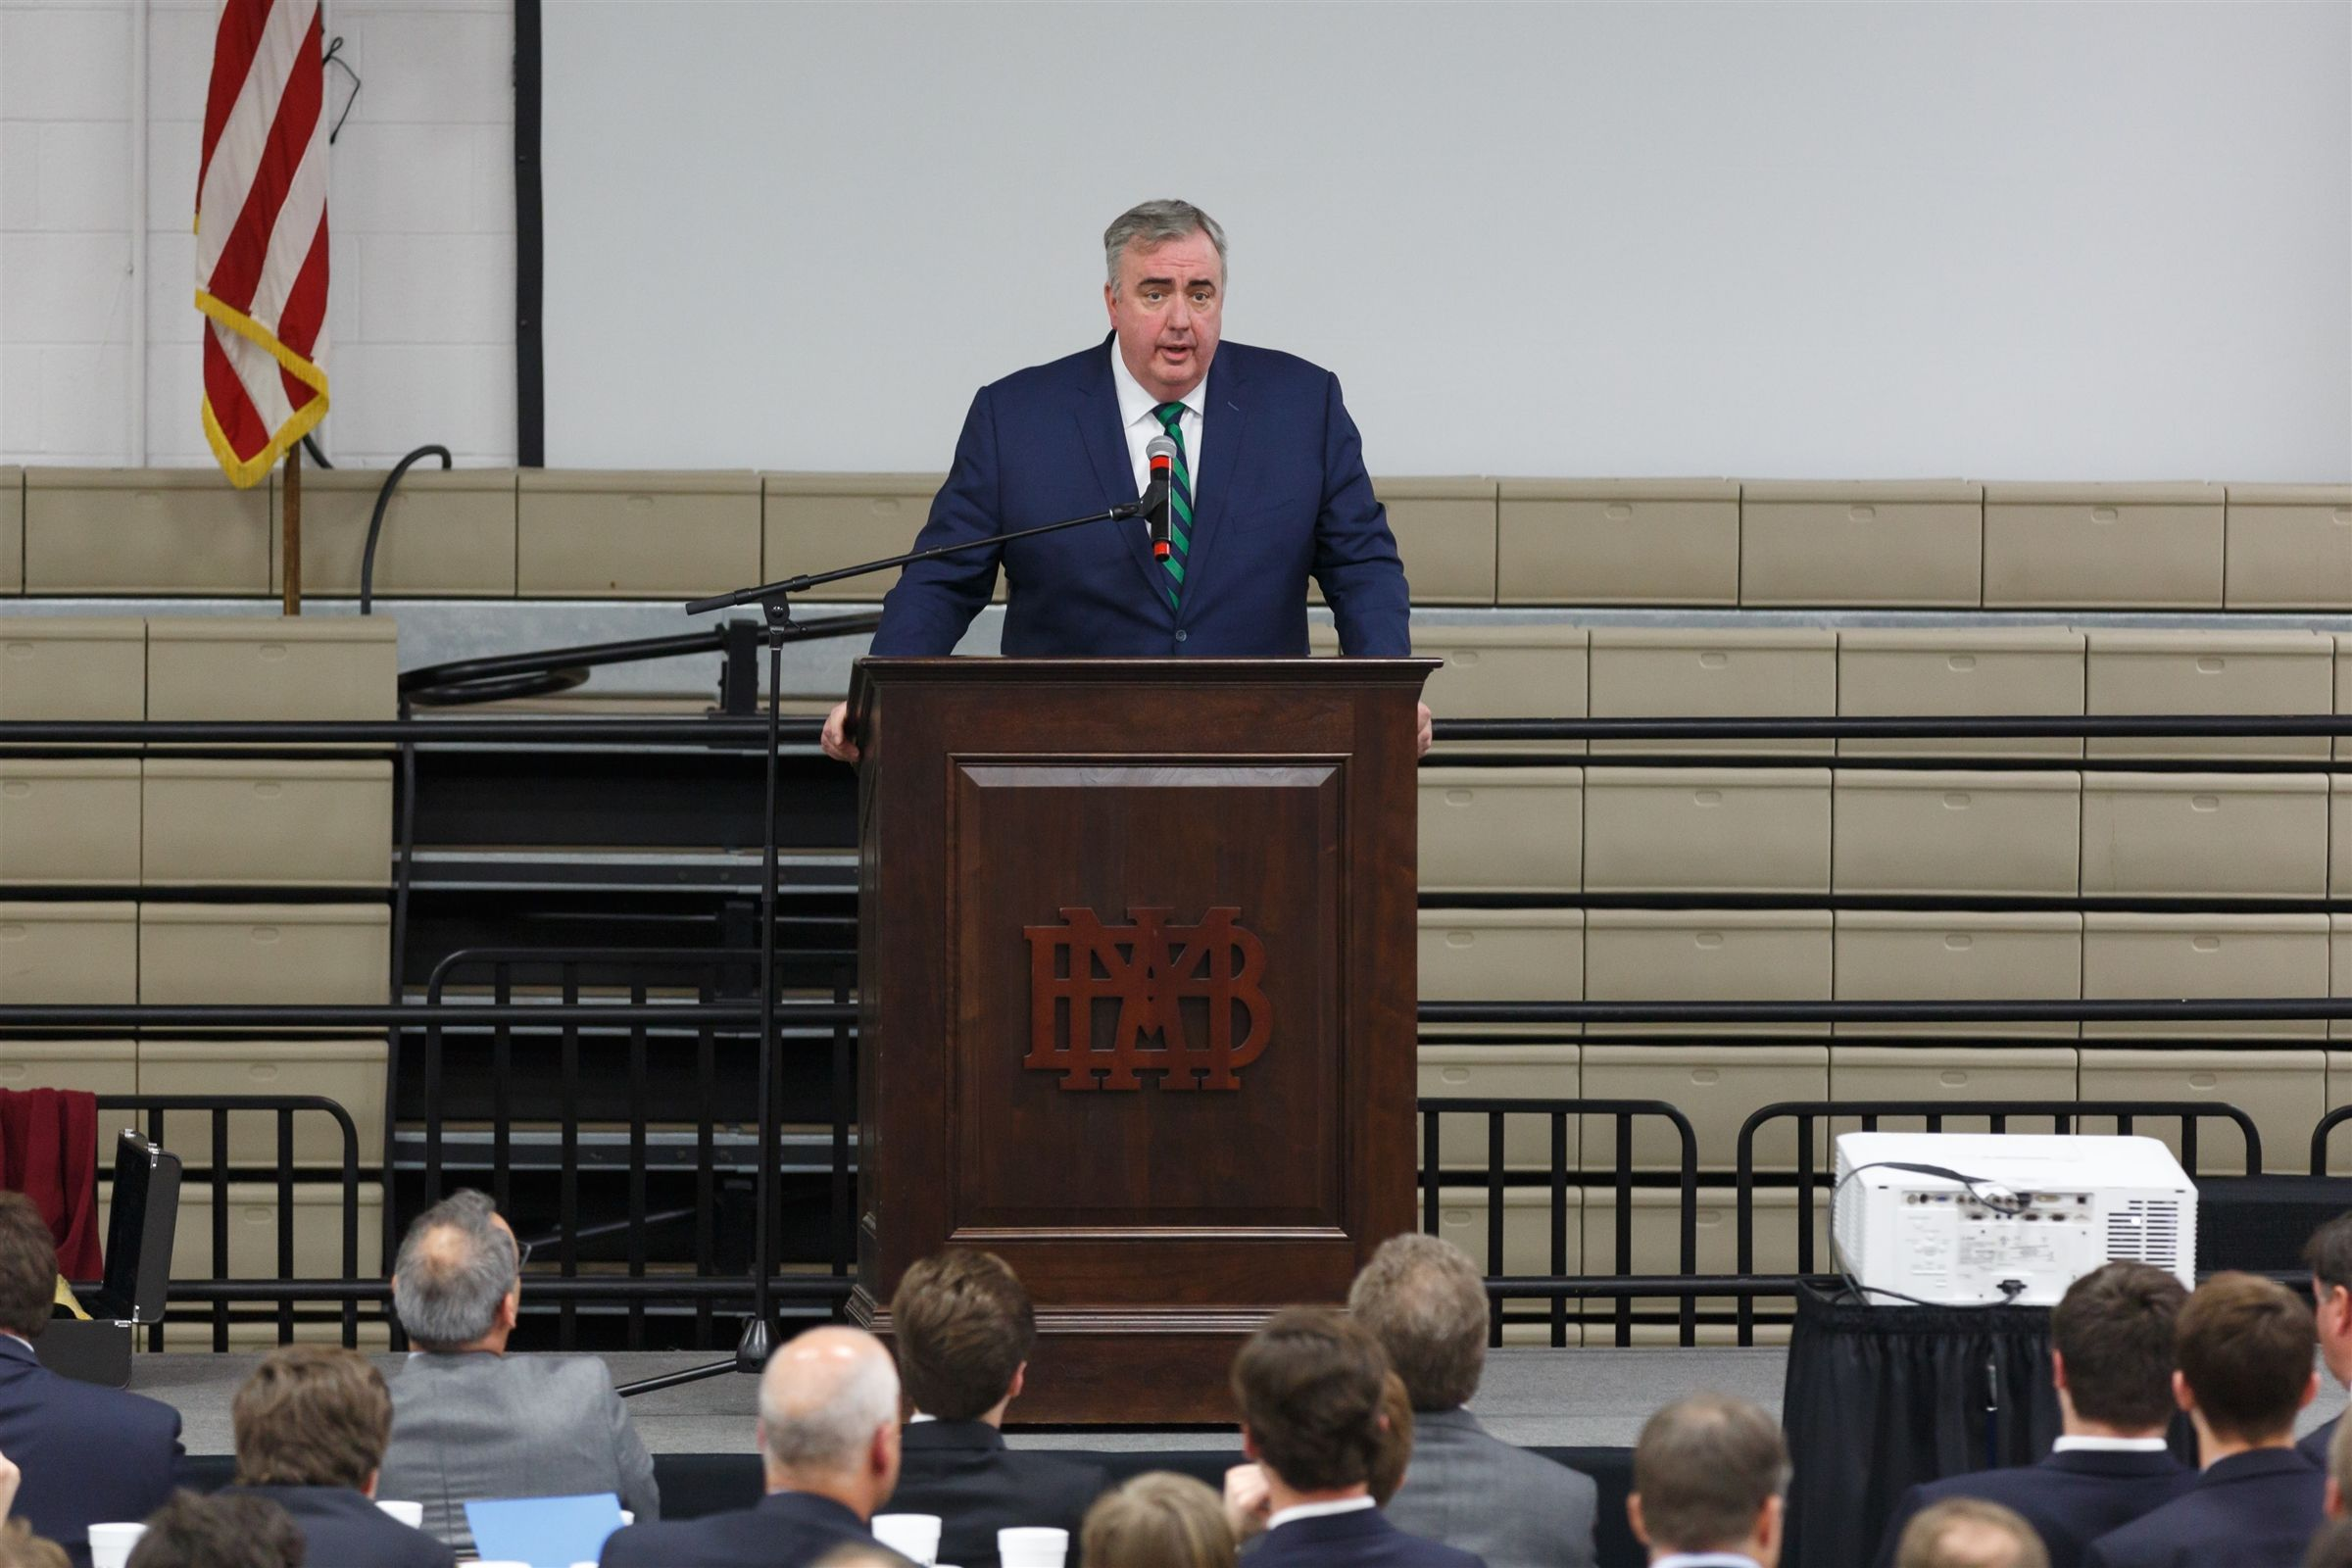 Boston Police Commissioner Ed Davis, keynote speaker